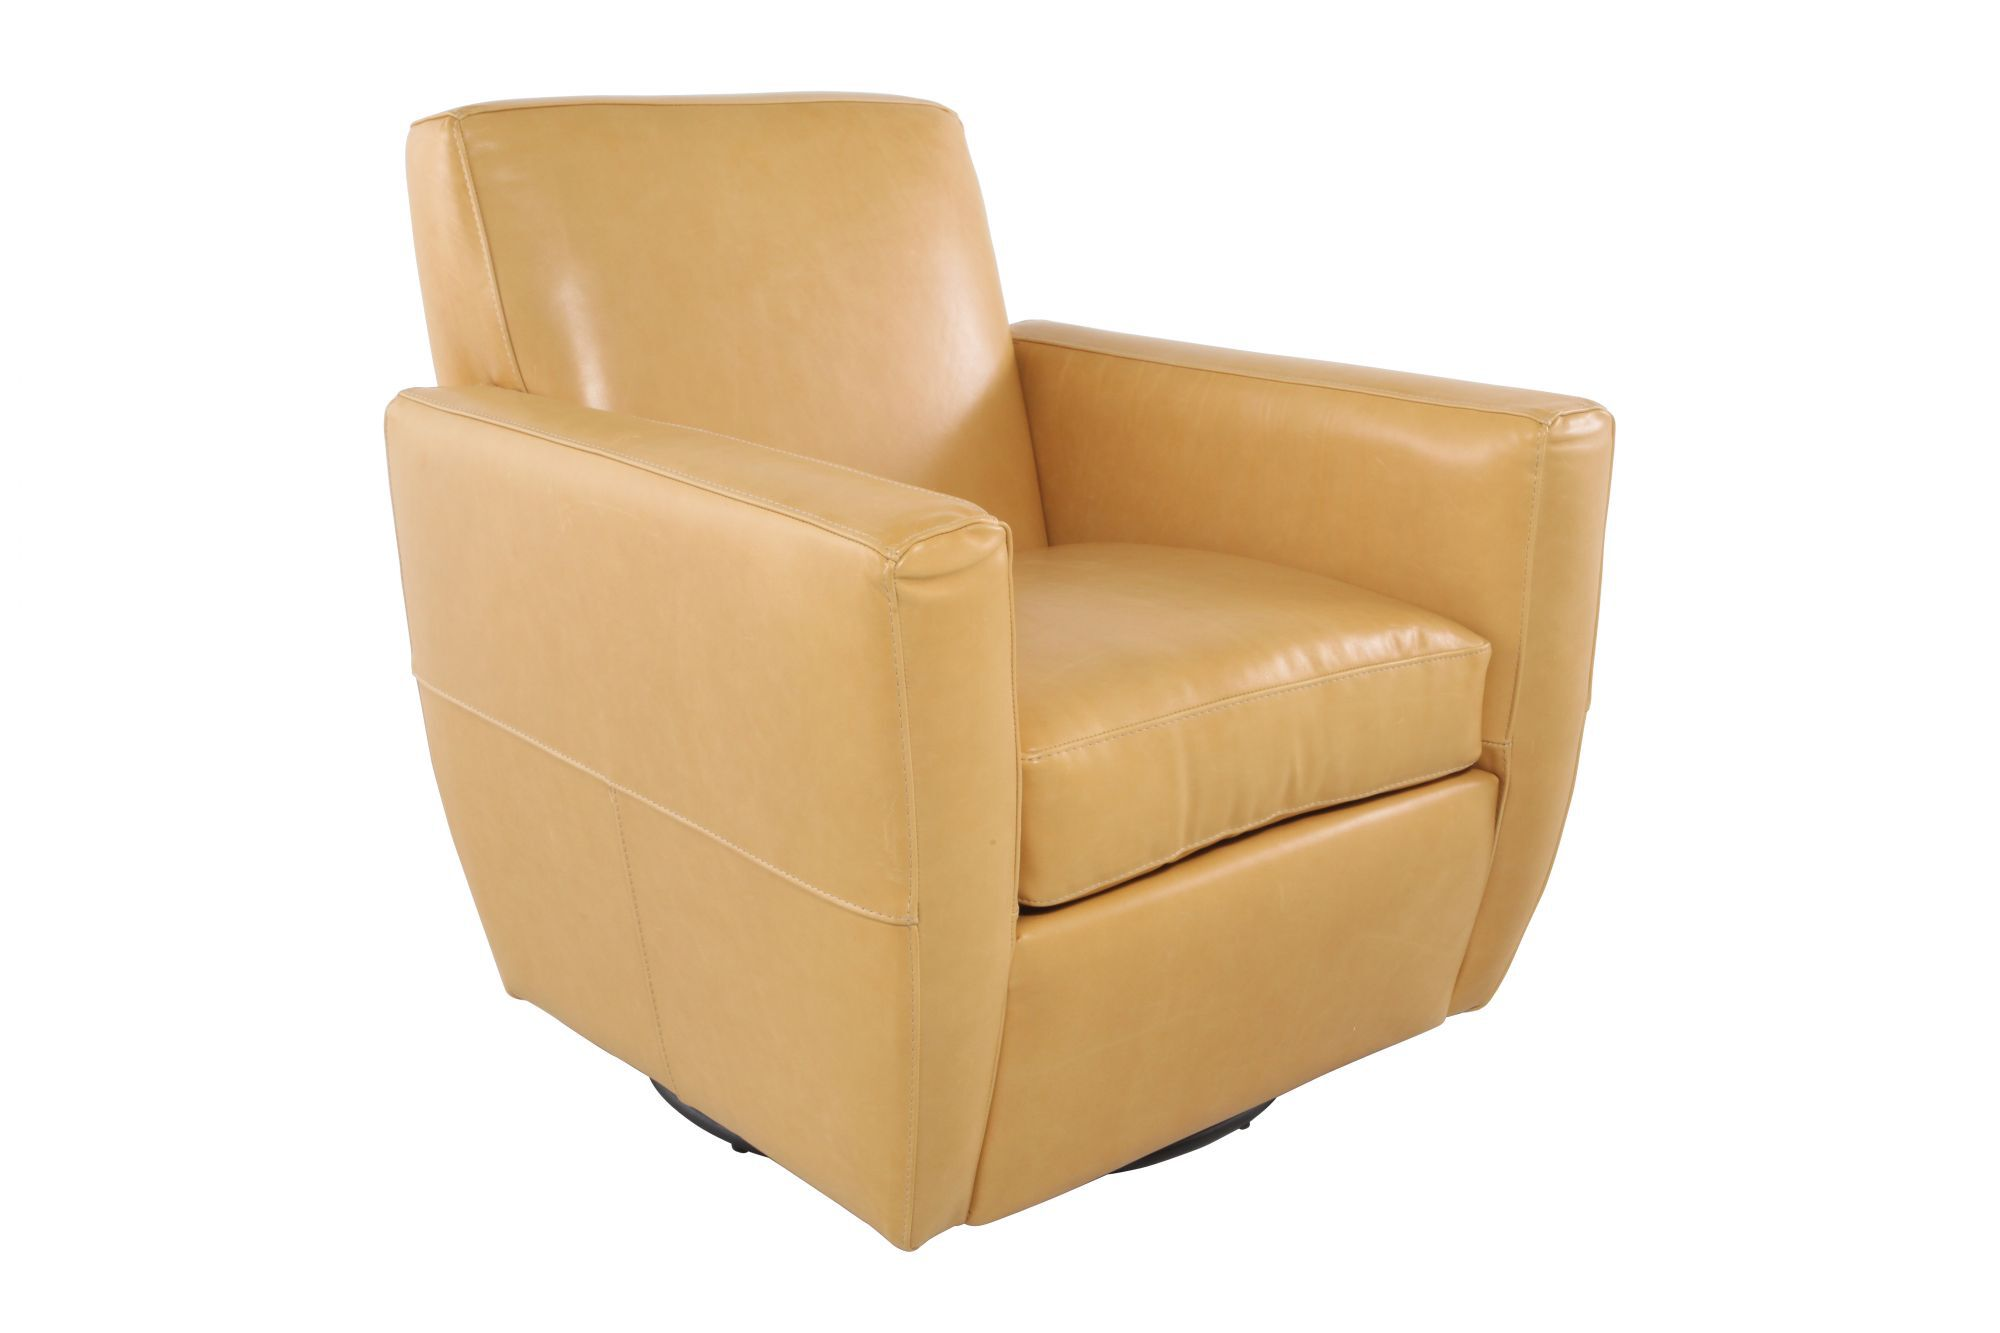 swivel chair vancouver best dorm room chairs leather in butterscotch mathis brothers